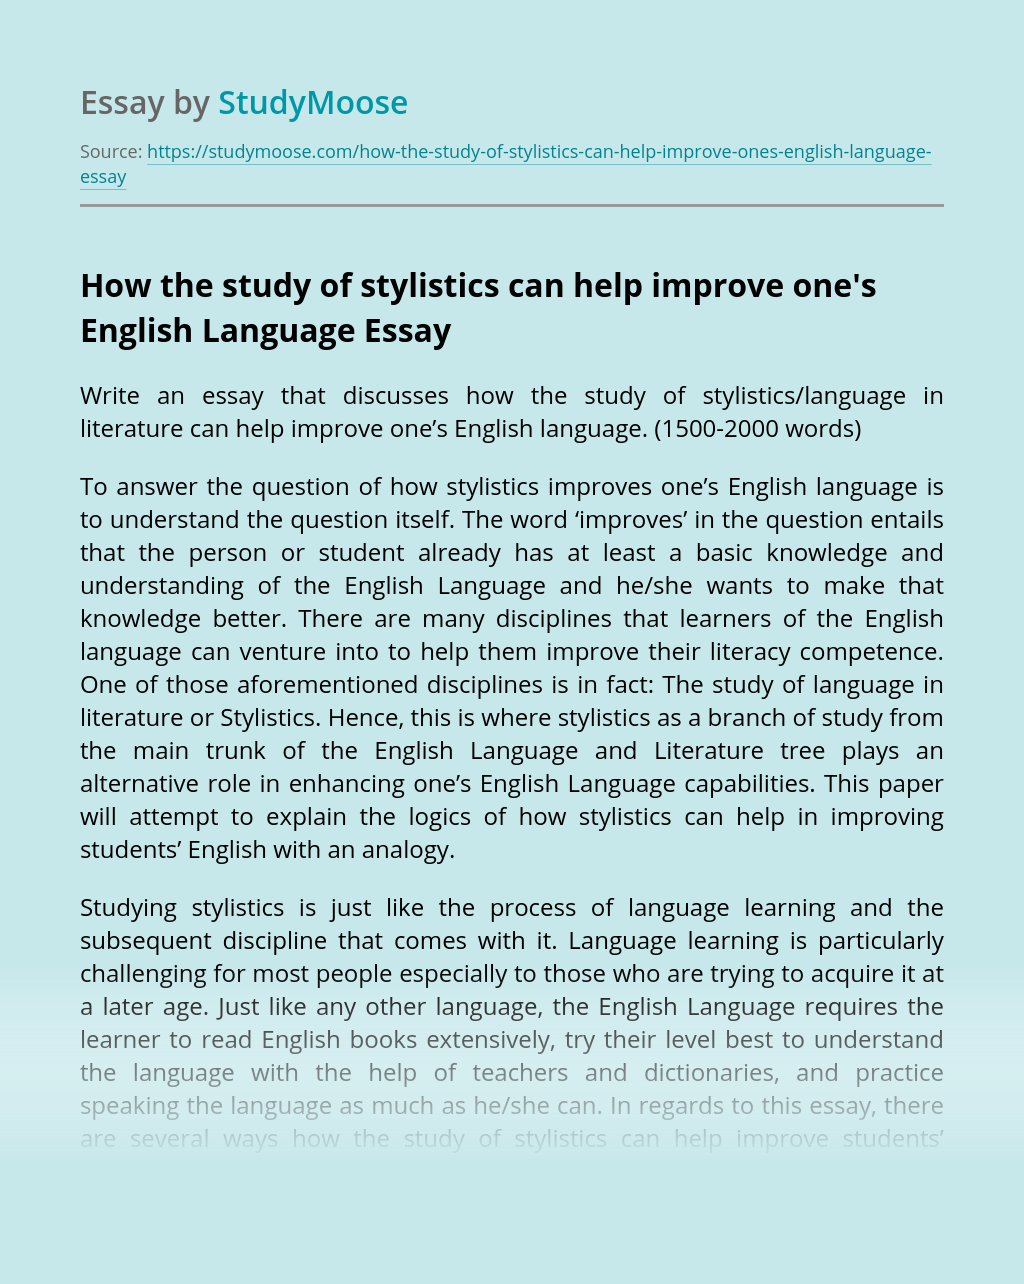 How the study of stylistics can help improve one's English Language